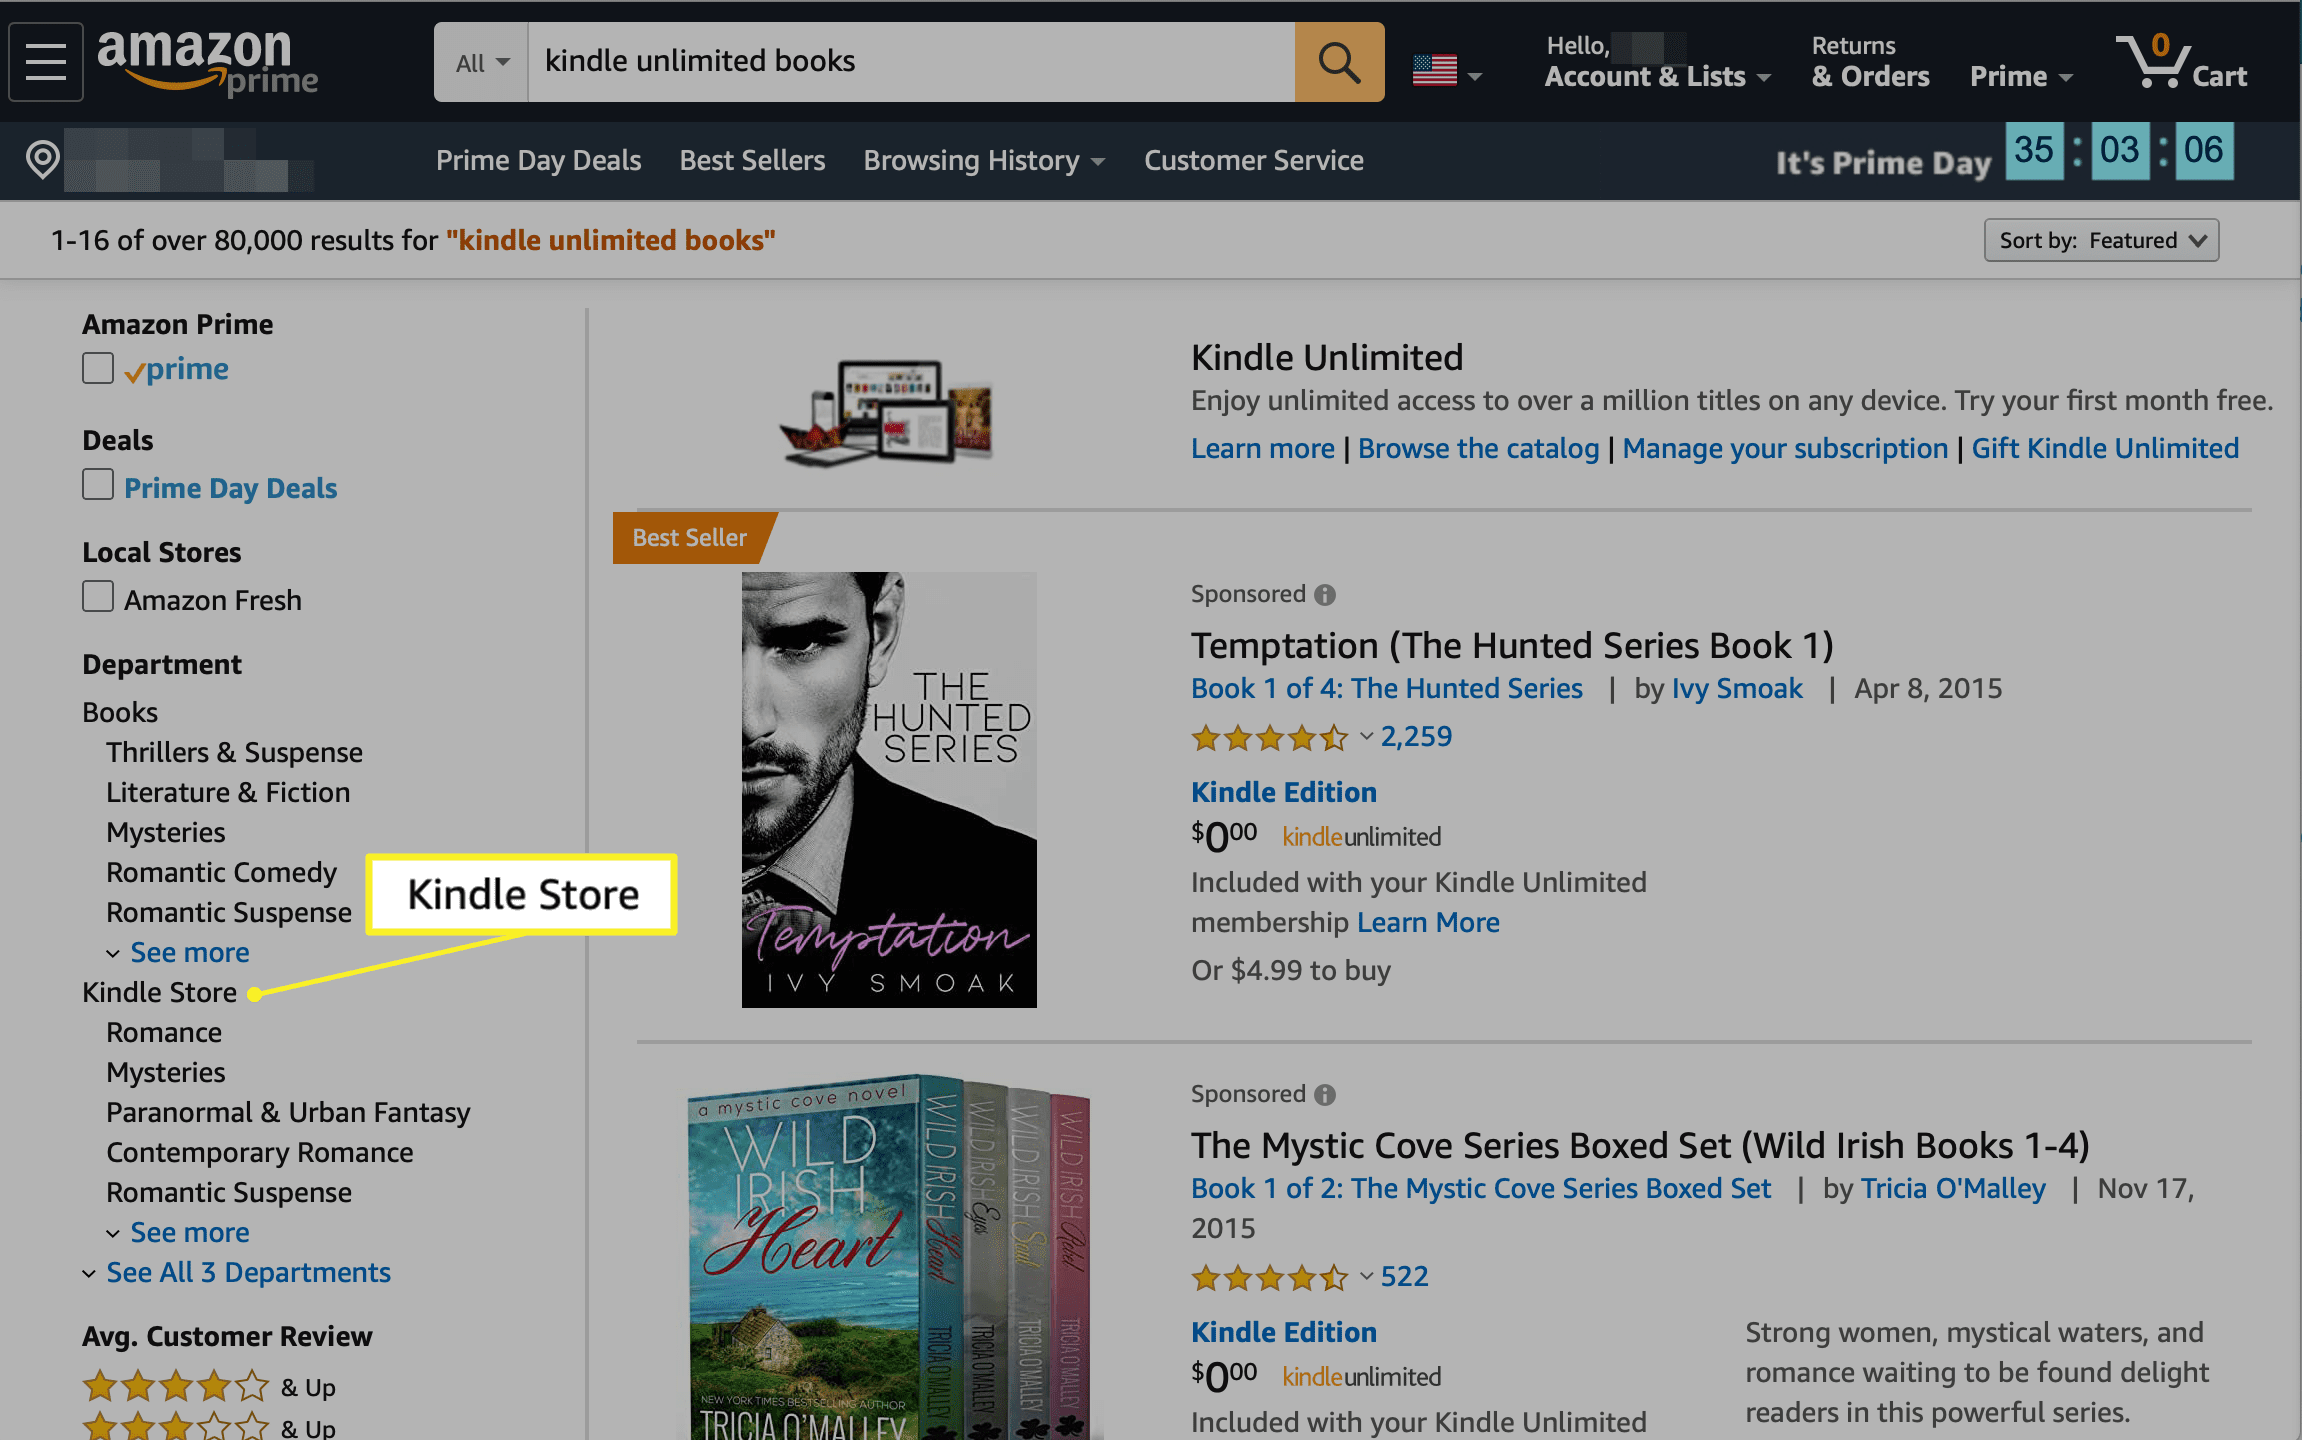 Kindle Store selected in the Departments section of Amazon